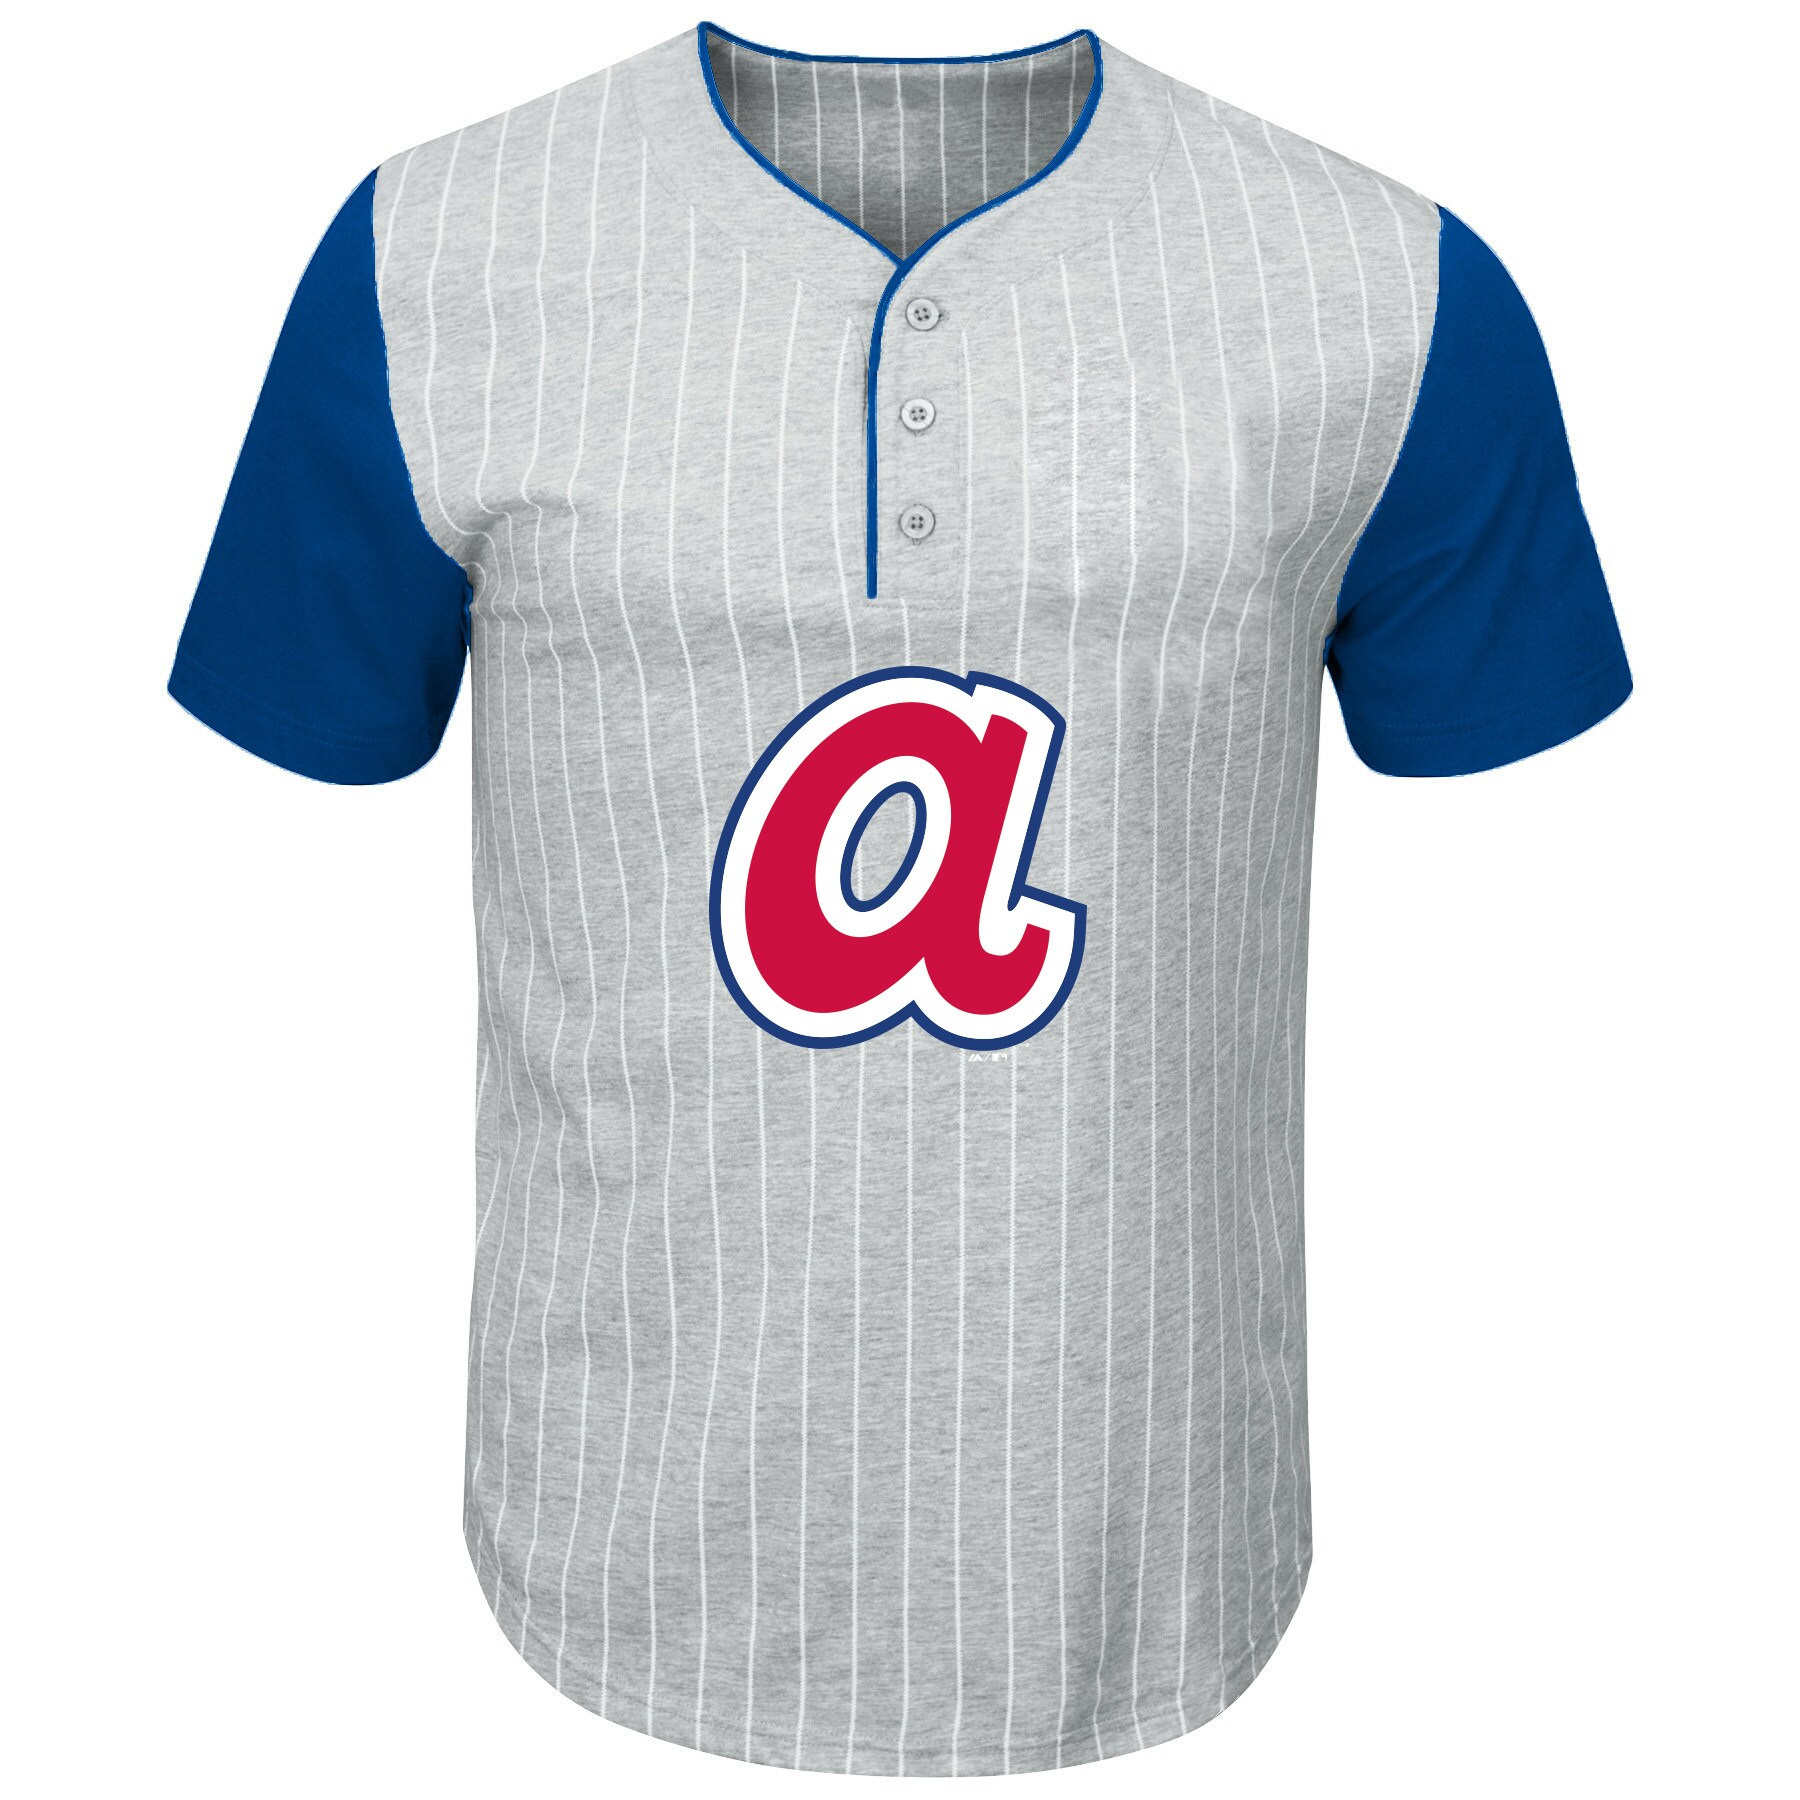 Atlanta Braves Majestic Big & Tall Cooperstown Collection Pinstripe Henley Raglan T-Shirt - Gray/Royal